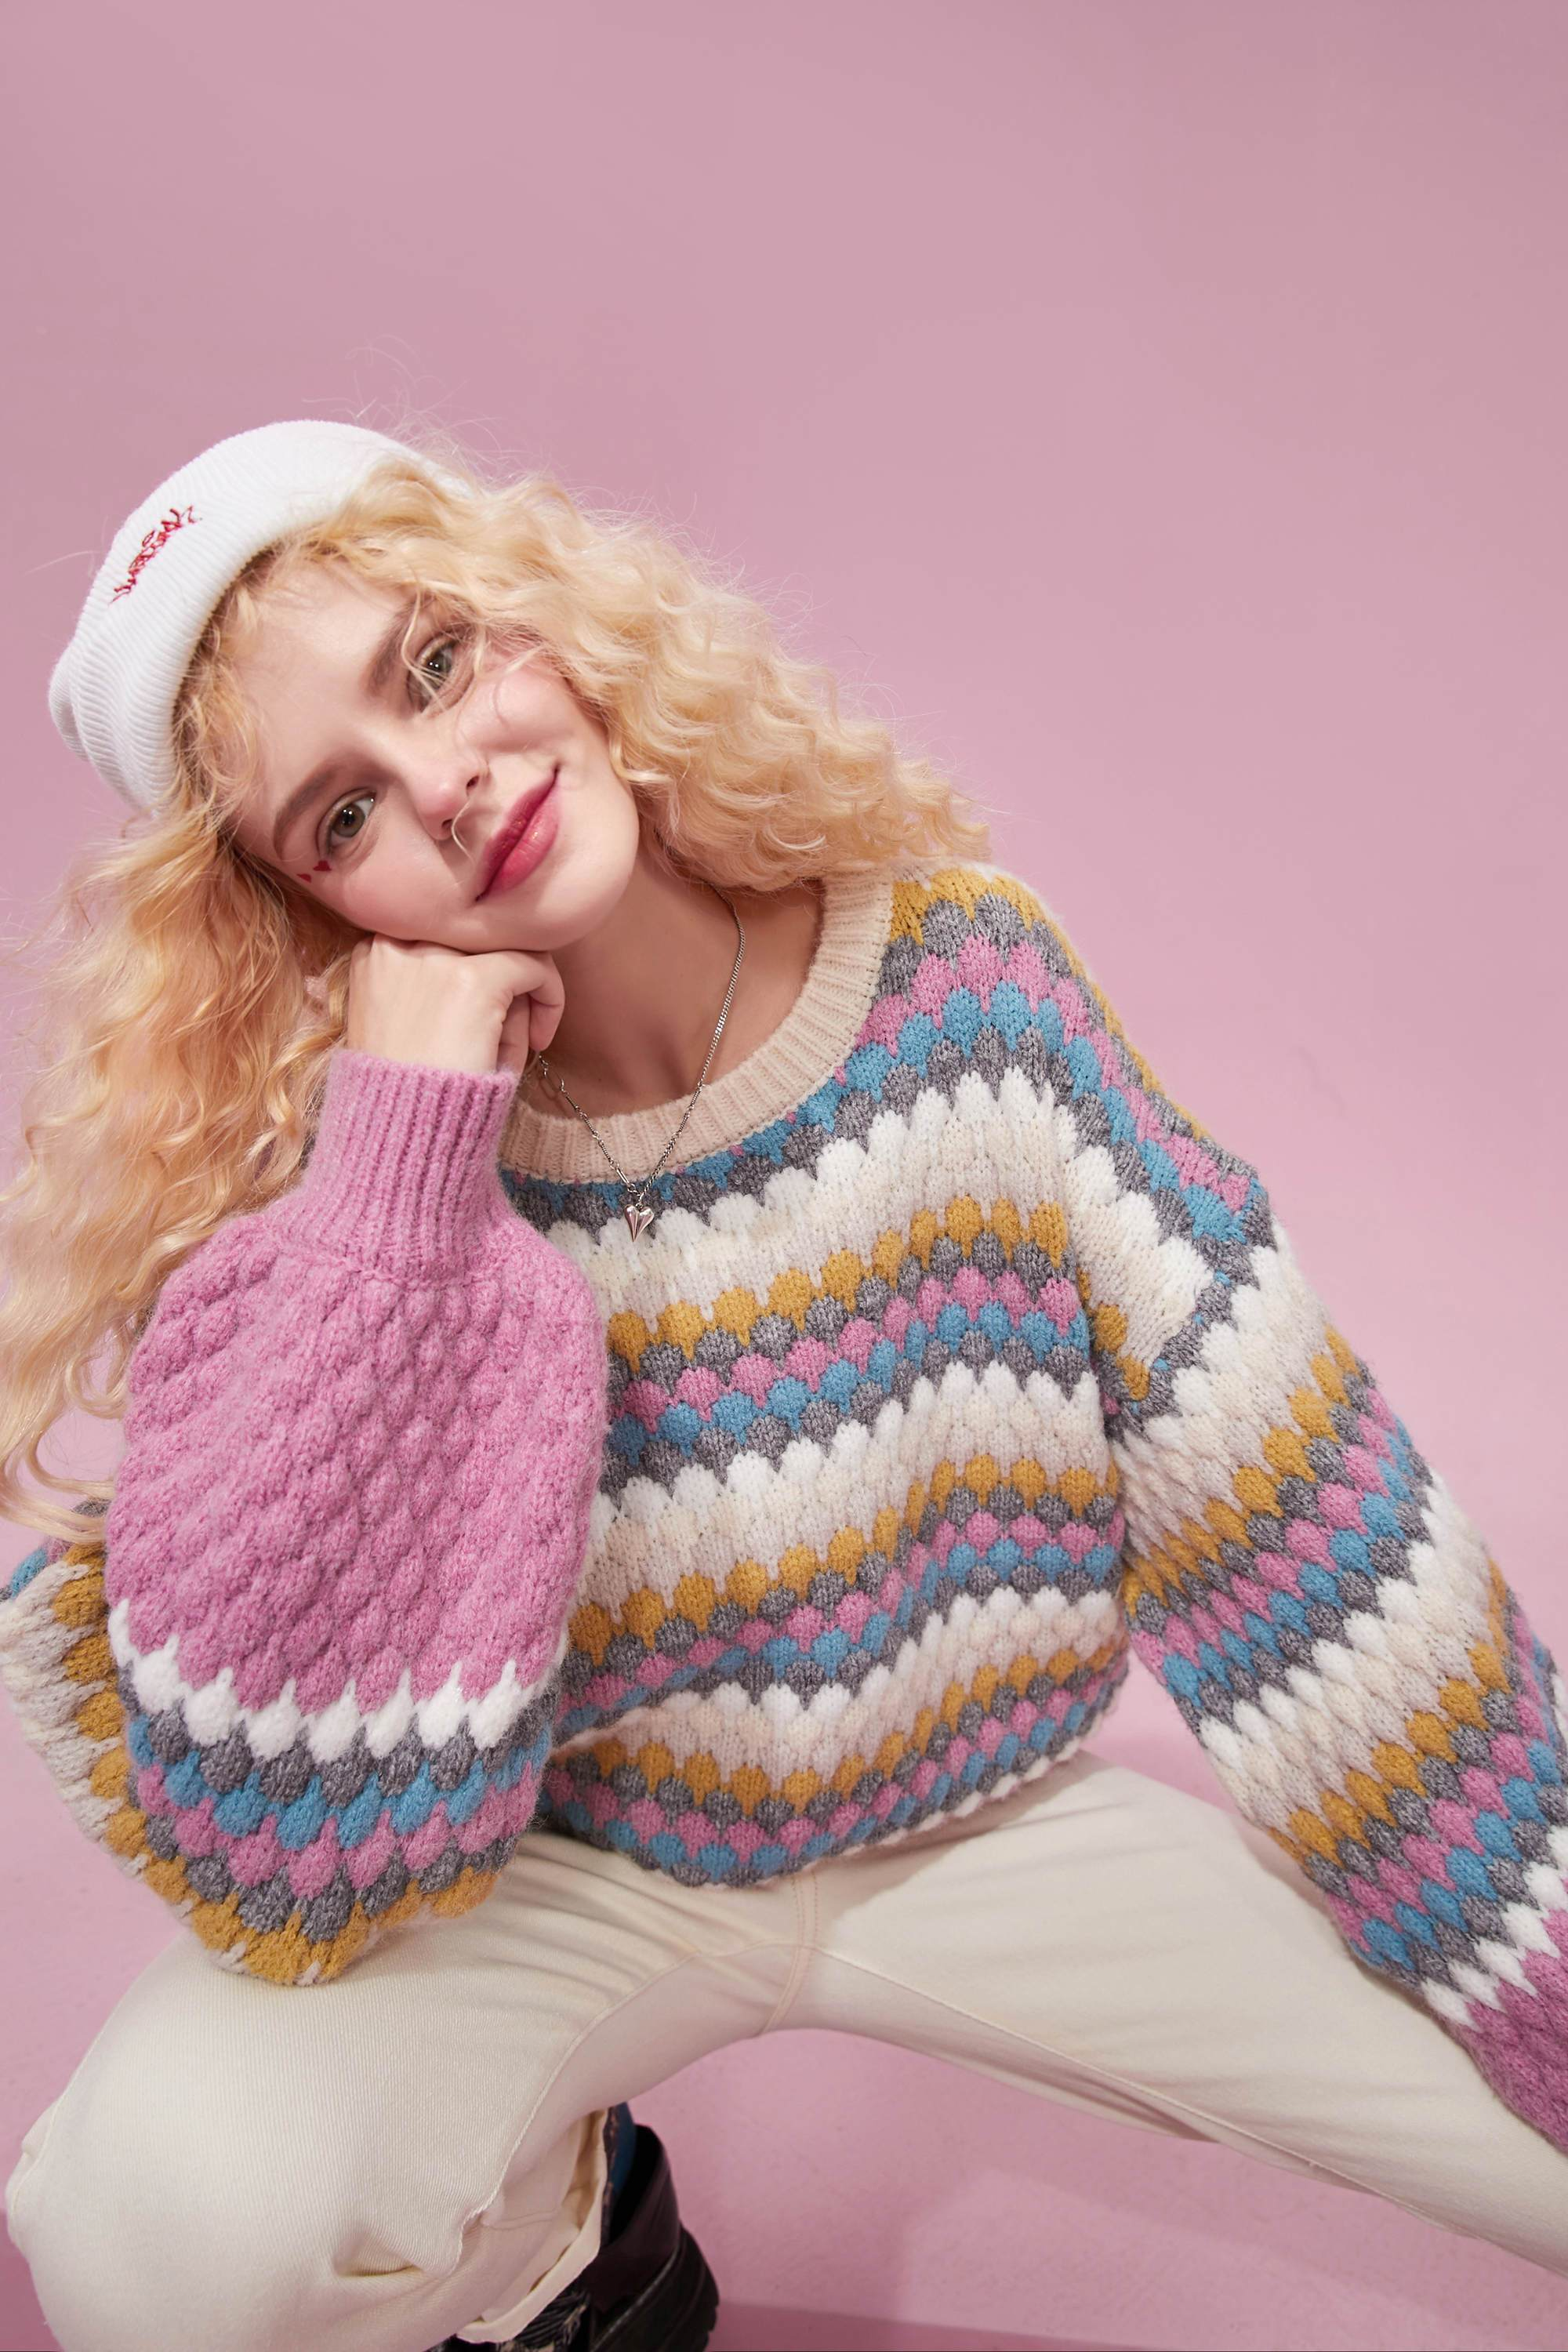 AESTHETIC SOFT GIRL COLORFUL STRIPED SWEATER-Cosmique Studio-Aesthetic-Outfits